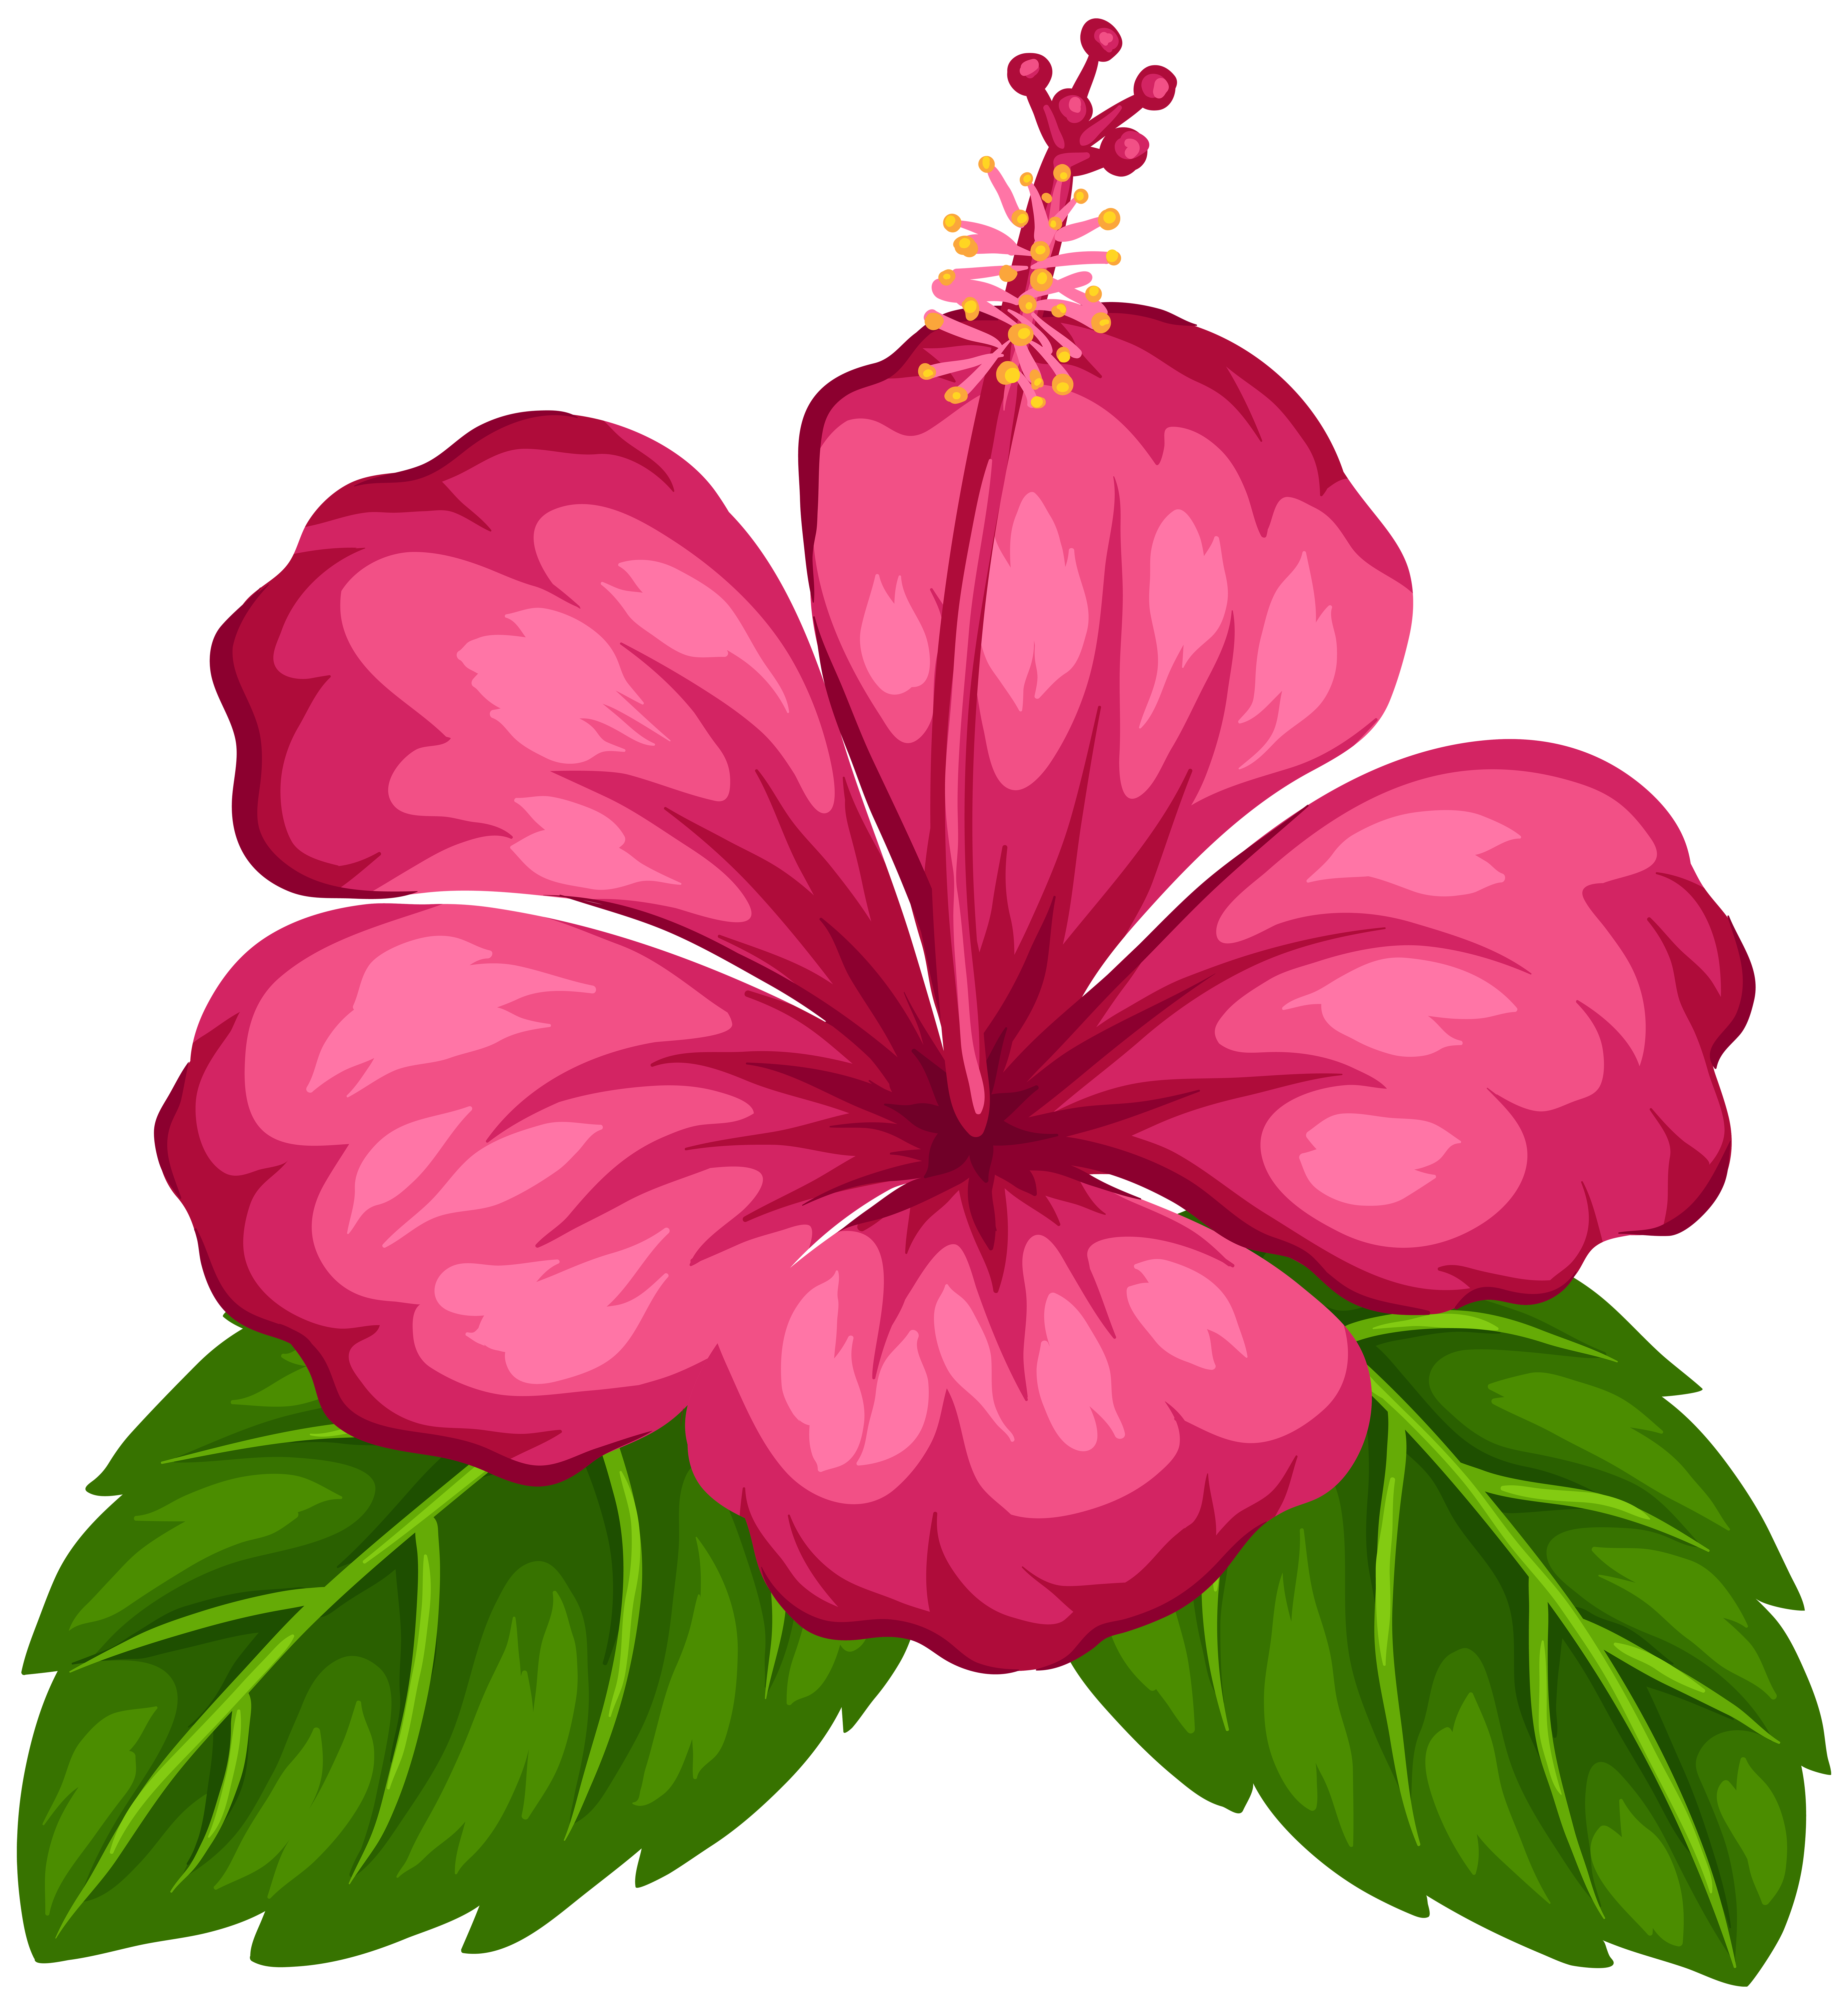 Exotic flower clip art. Chinese flowers png banner transparent stock